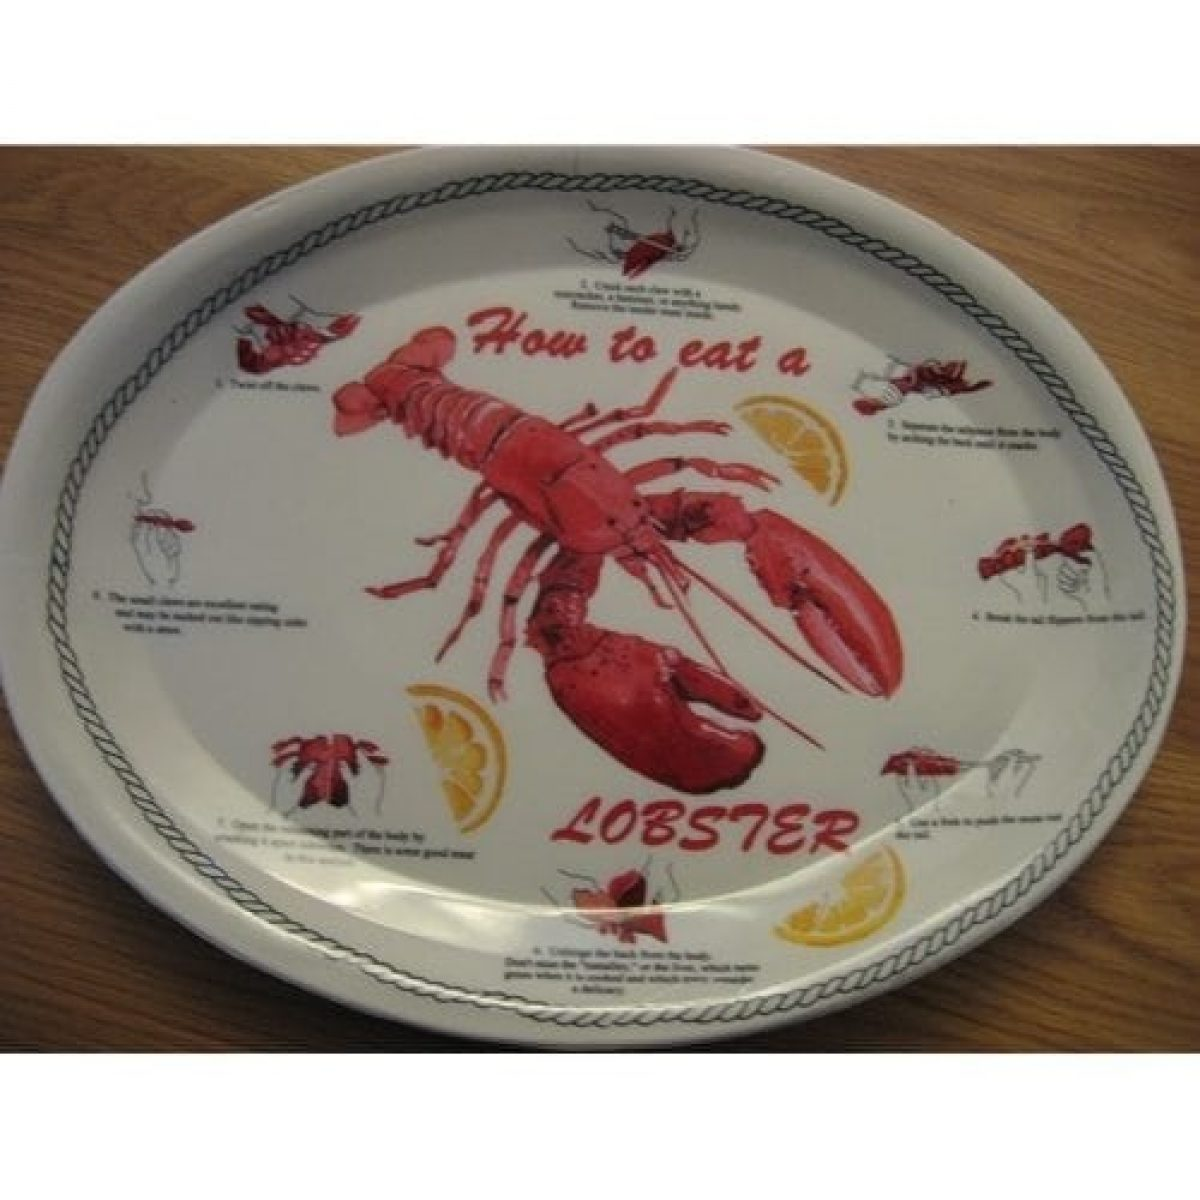 Lobster Dinner Plates 4 Pack – ADD-ON ...